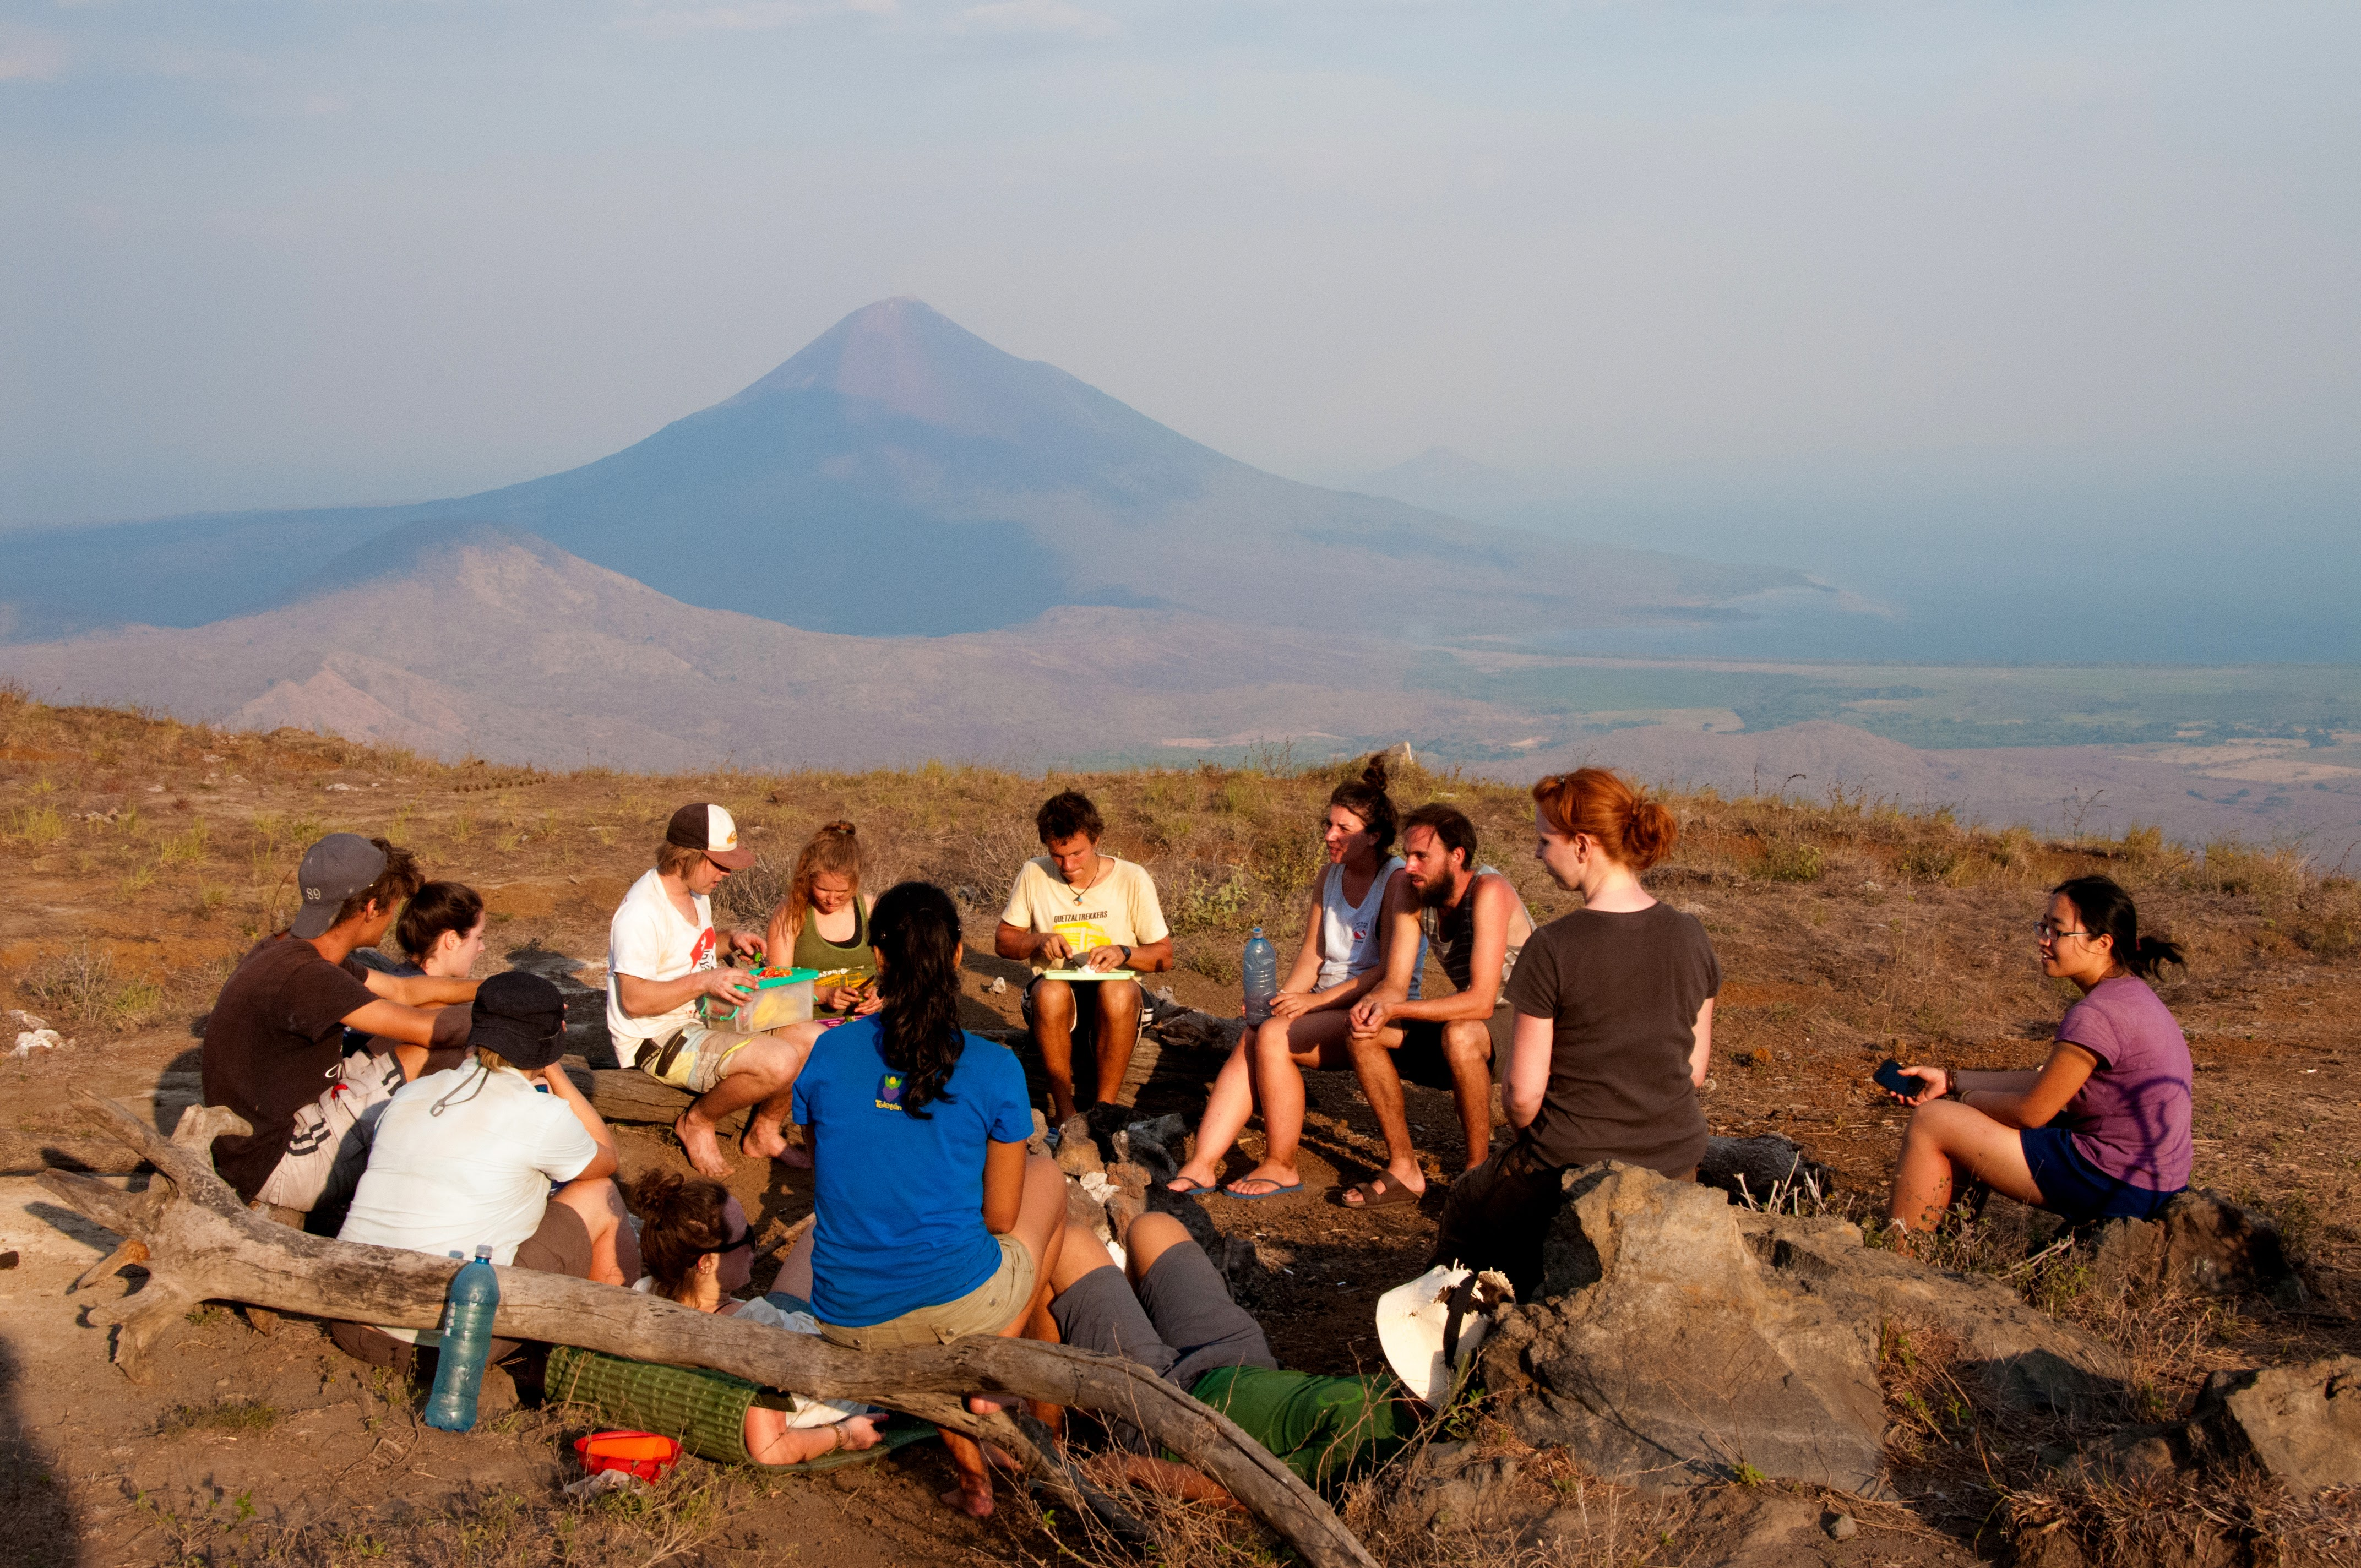 Sitting around campfire for dinner during El Hoyo Trek